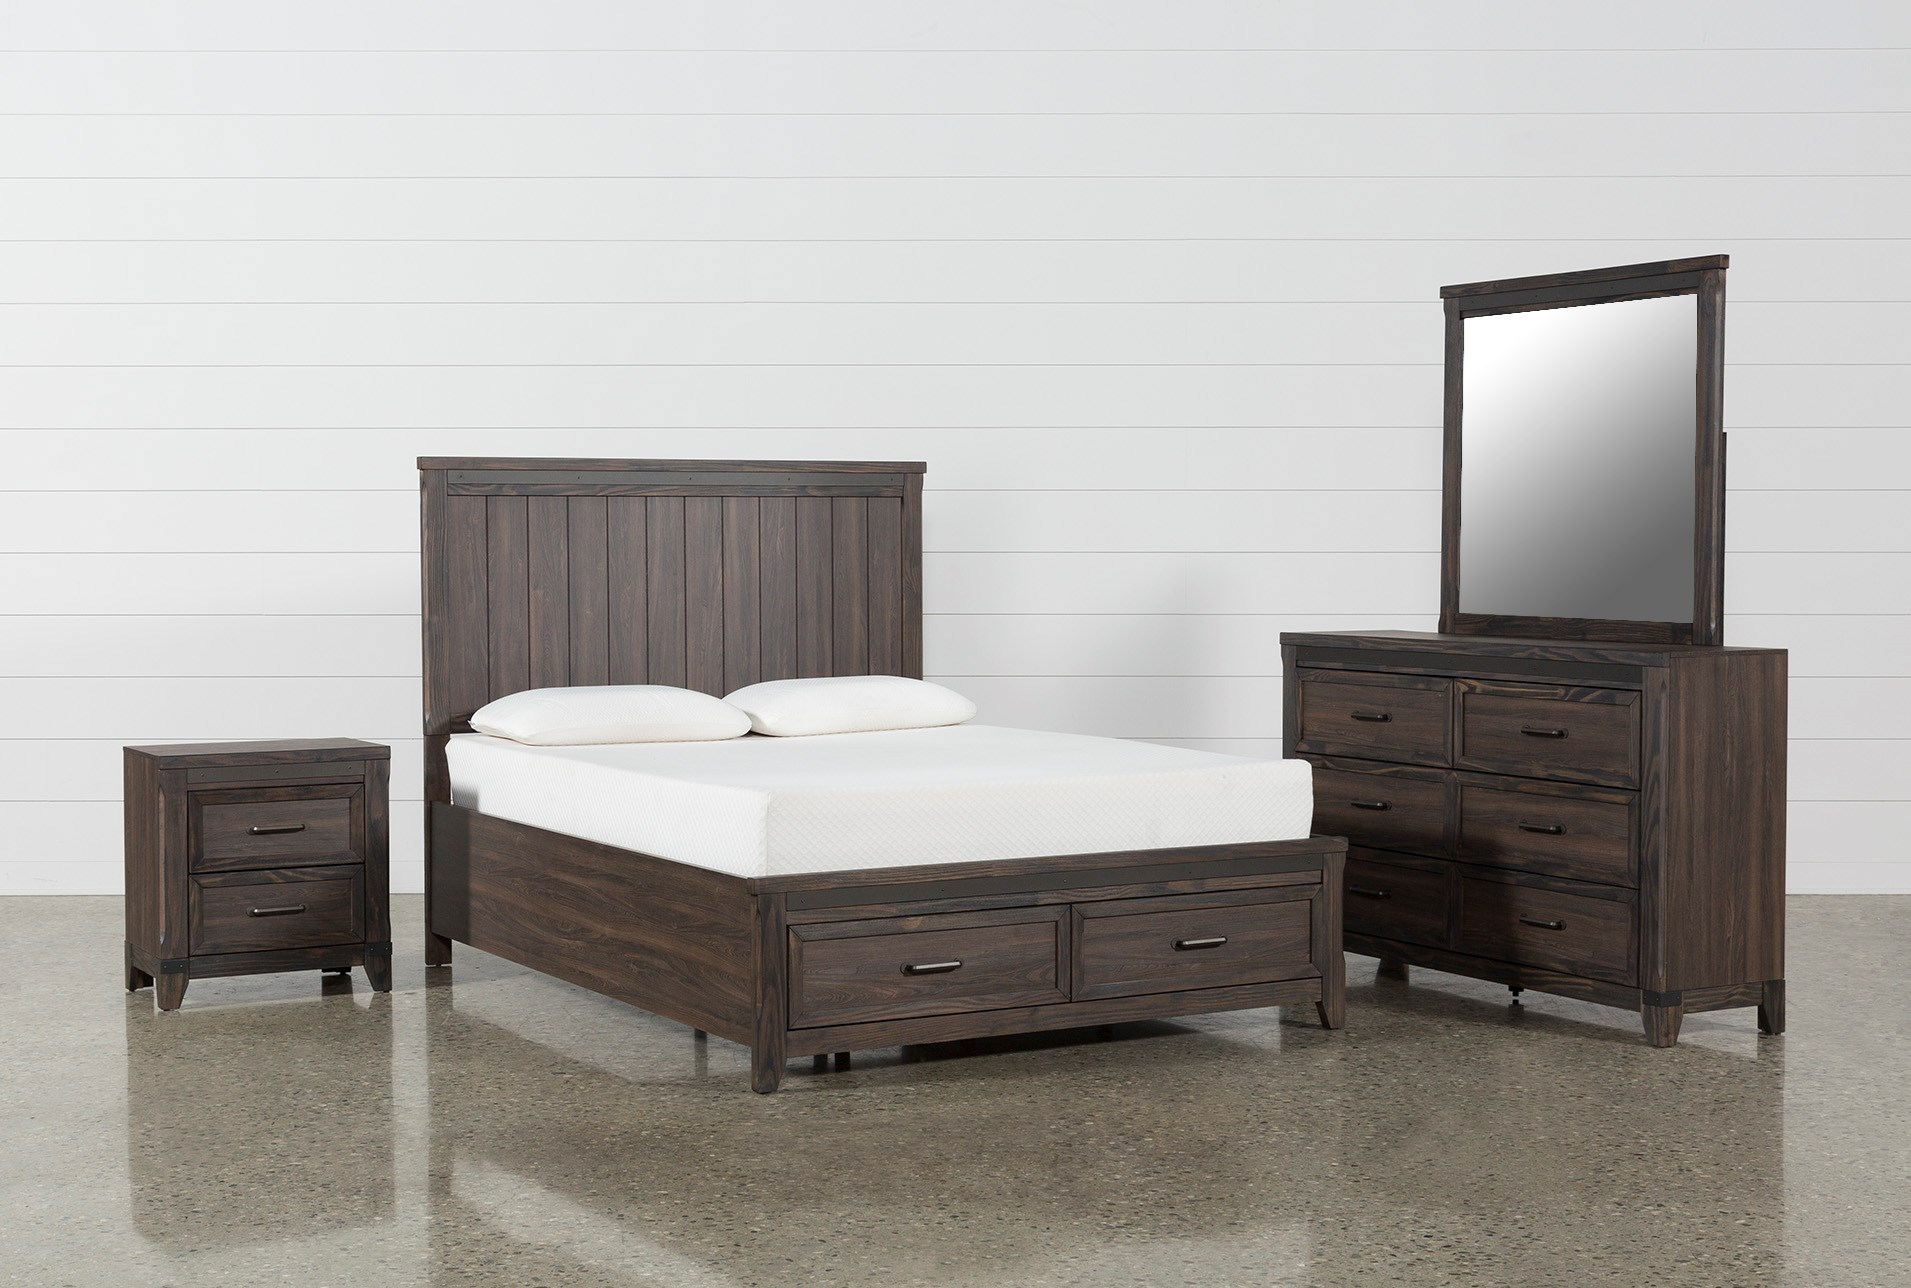 Hendricks 4 Piece Queen Bedroom Set Qty 1 Has Been Successfully Added To Your Cart